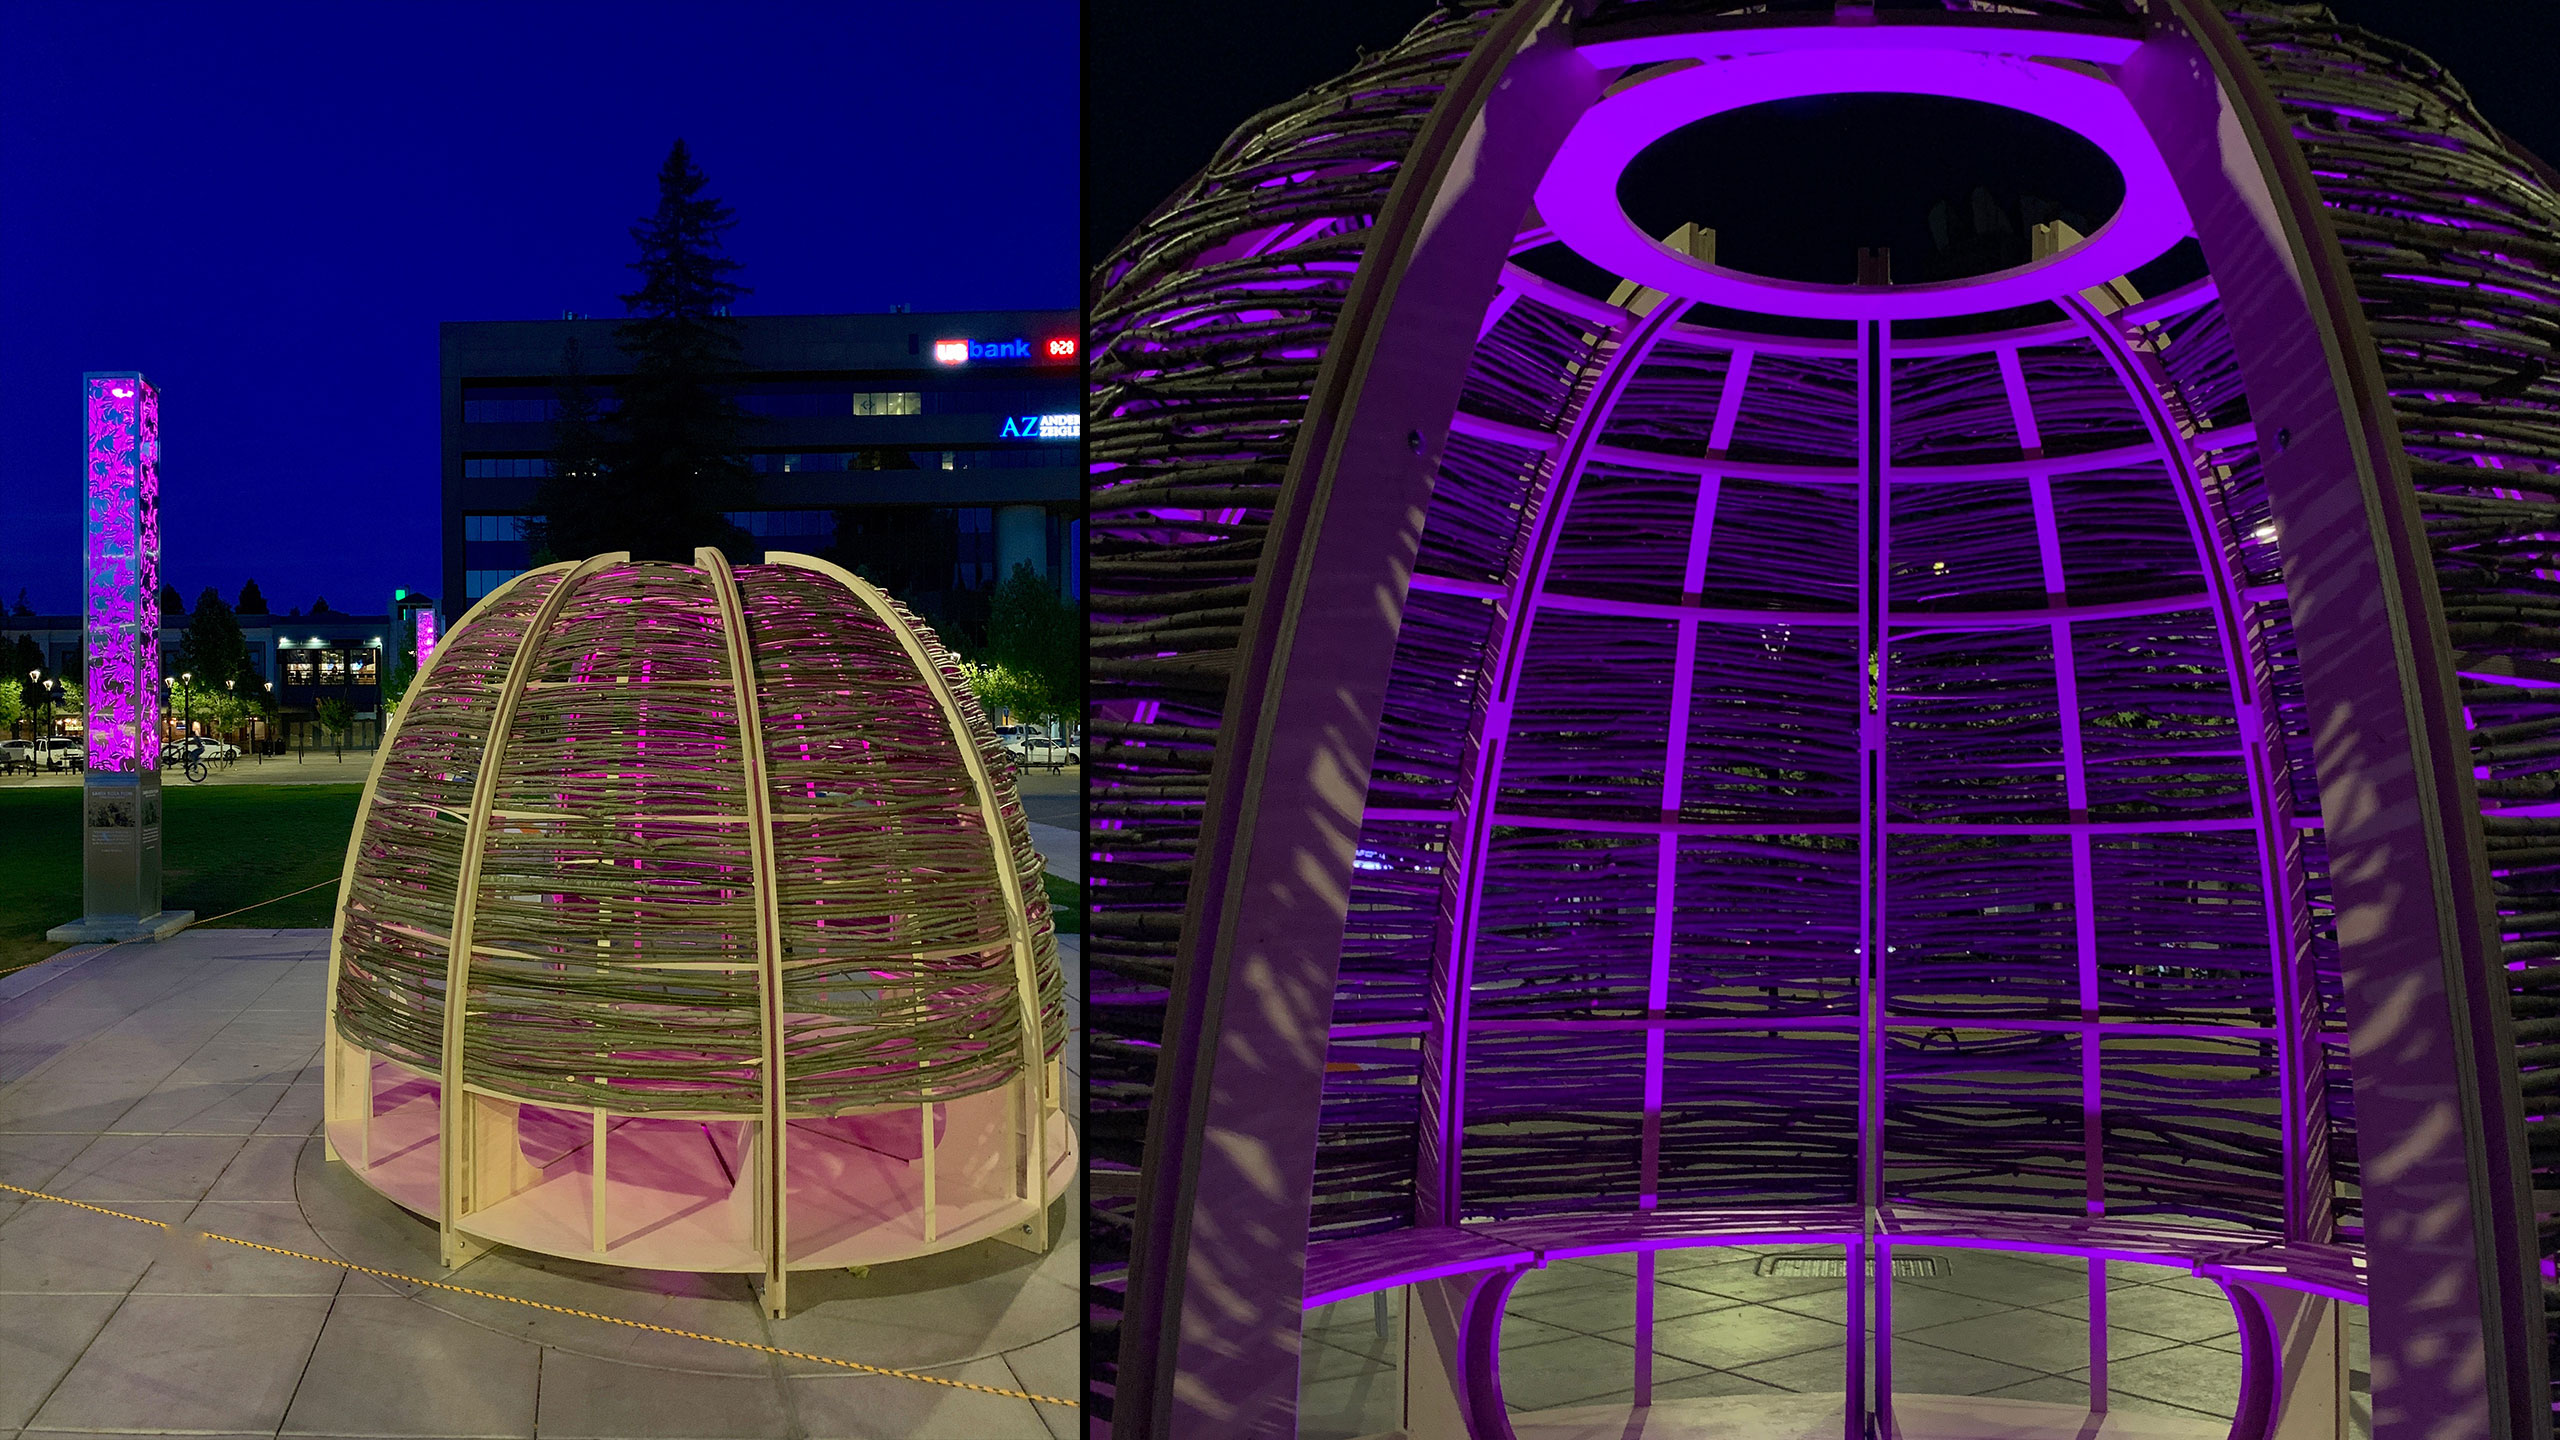 Architecture-in-balance-with-nature-Santa-Rosa-outdoor-wood-stucture-with-fun-lighting-2